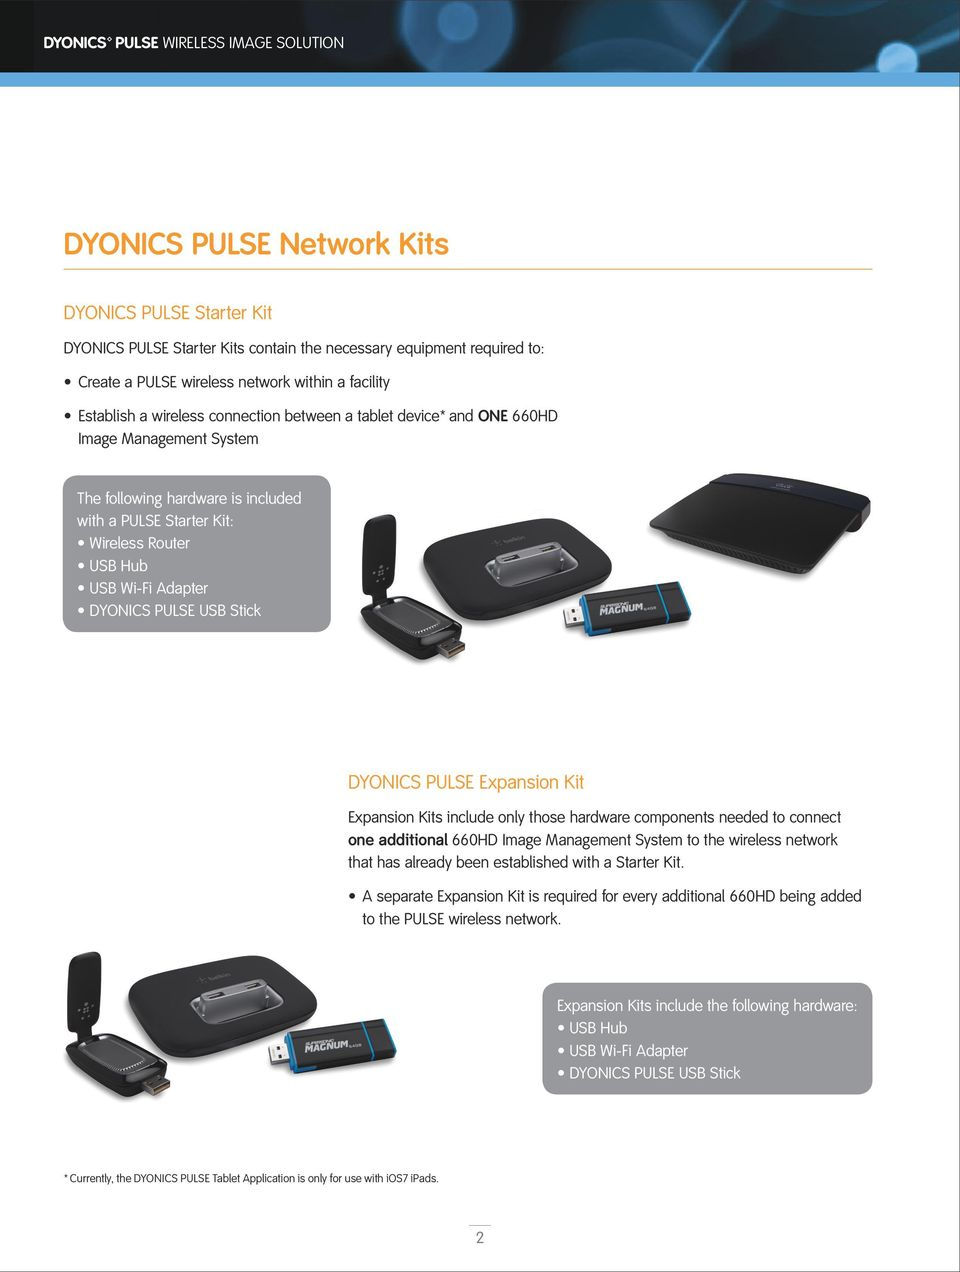 USB Wi-Fi Adapter DYONICS PULSE USB Stick DYONICS PULSE Expansion Kit Expansion Kits include only those hardware components needed to connect one additional 660HD Image Management System to the